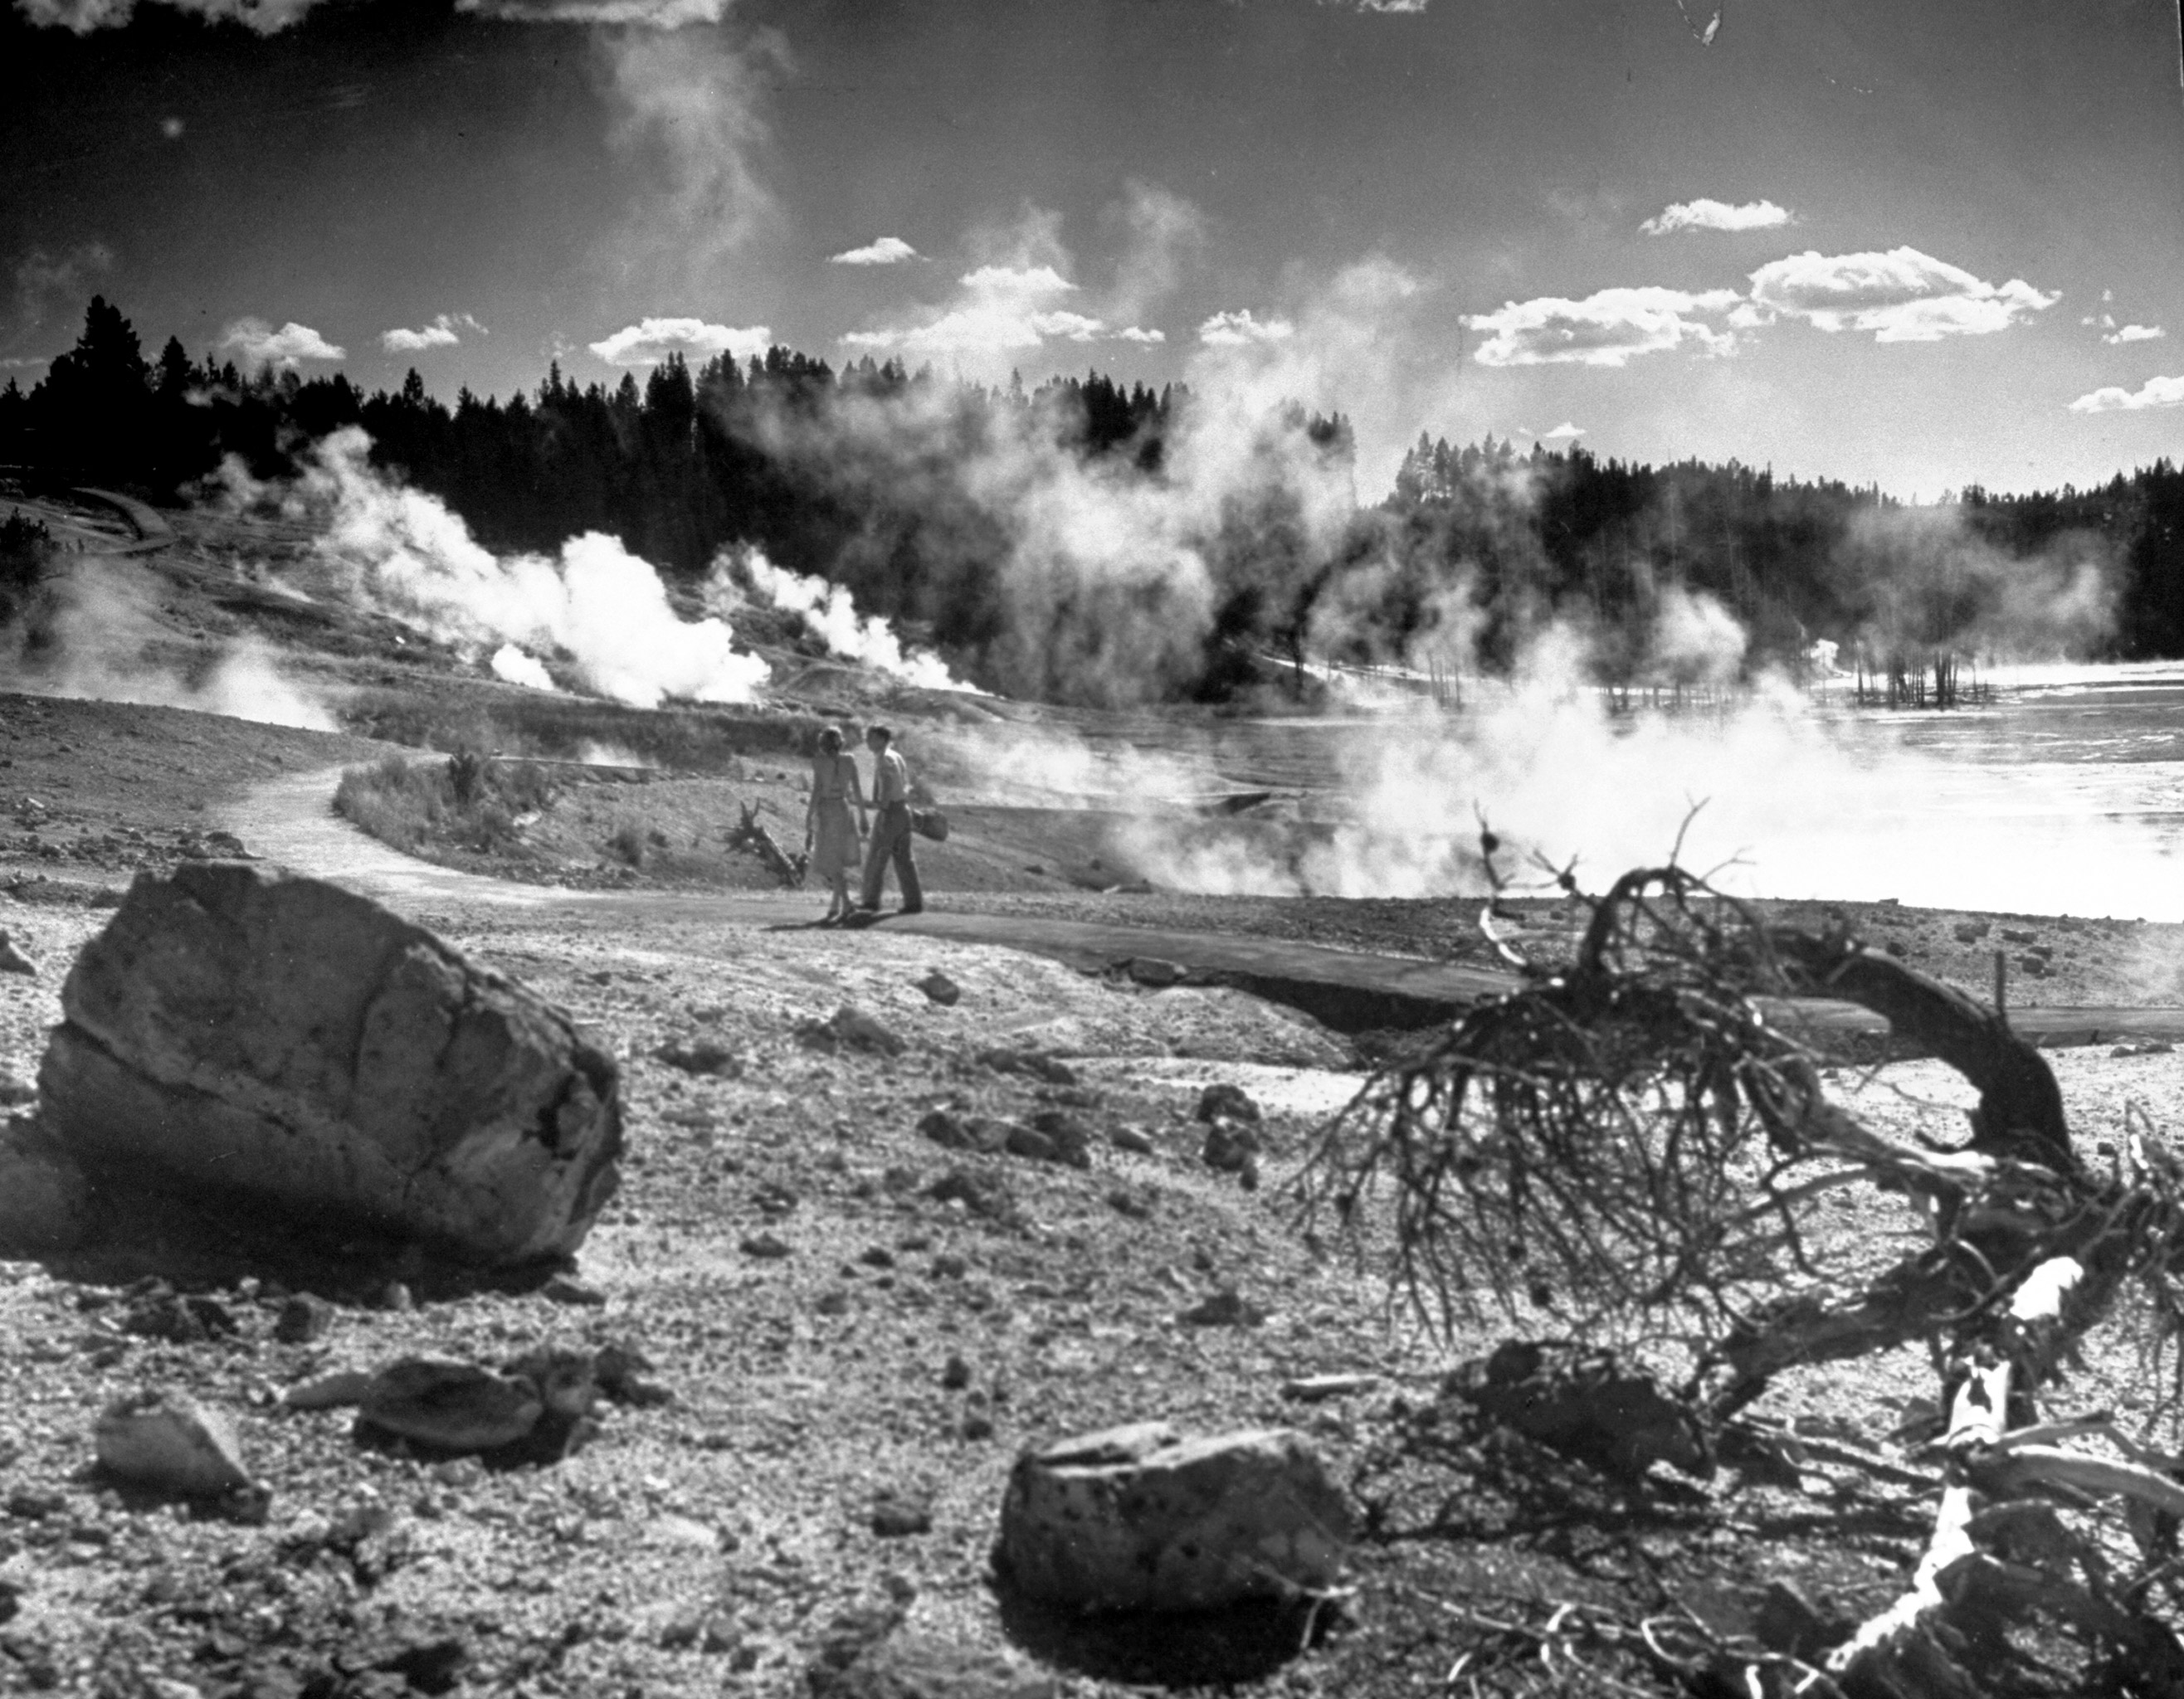 Caption from LIFE. Norris Geyser Basin is a bowl-like area containing 30 geysers, most of which erupt every few seconds or minutes, so that there are always several in action.